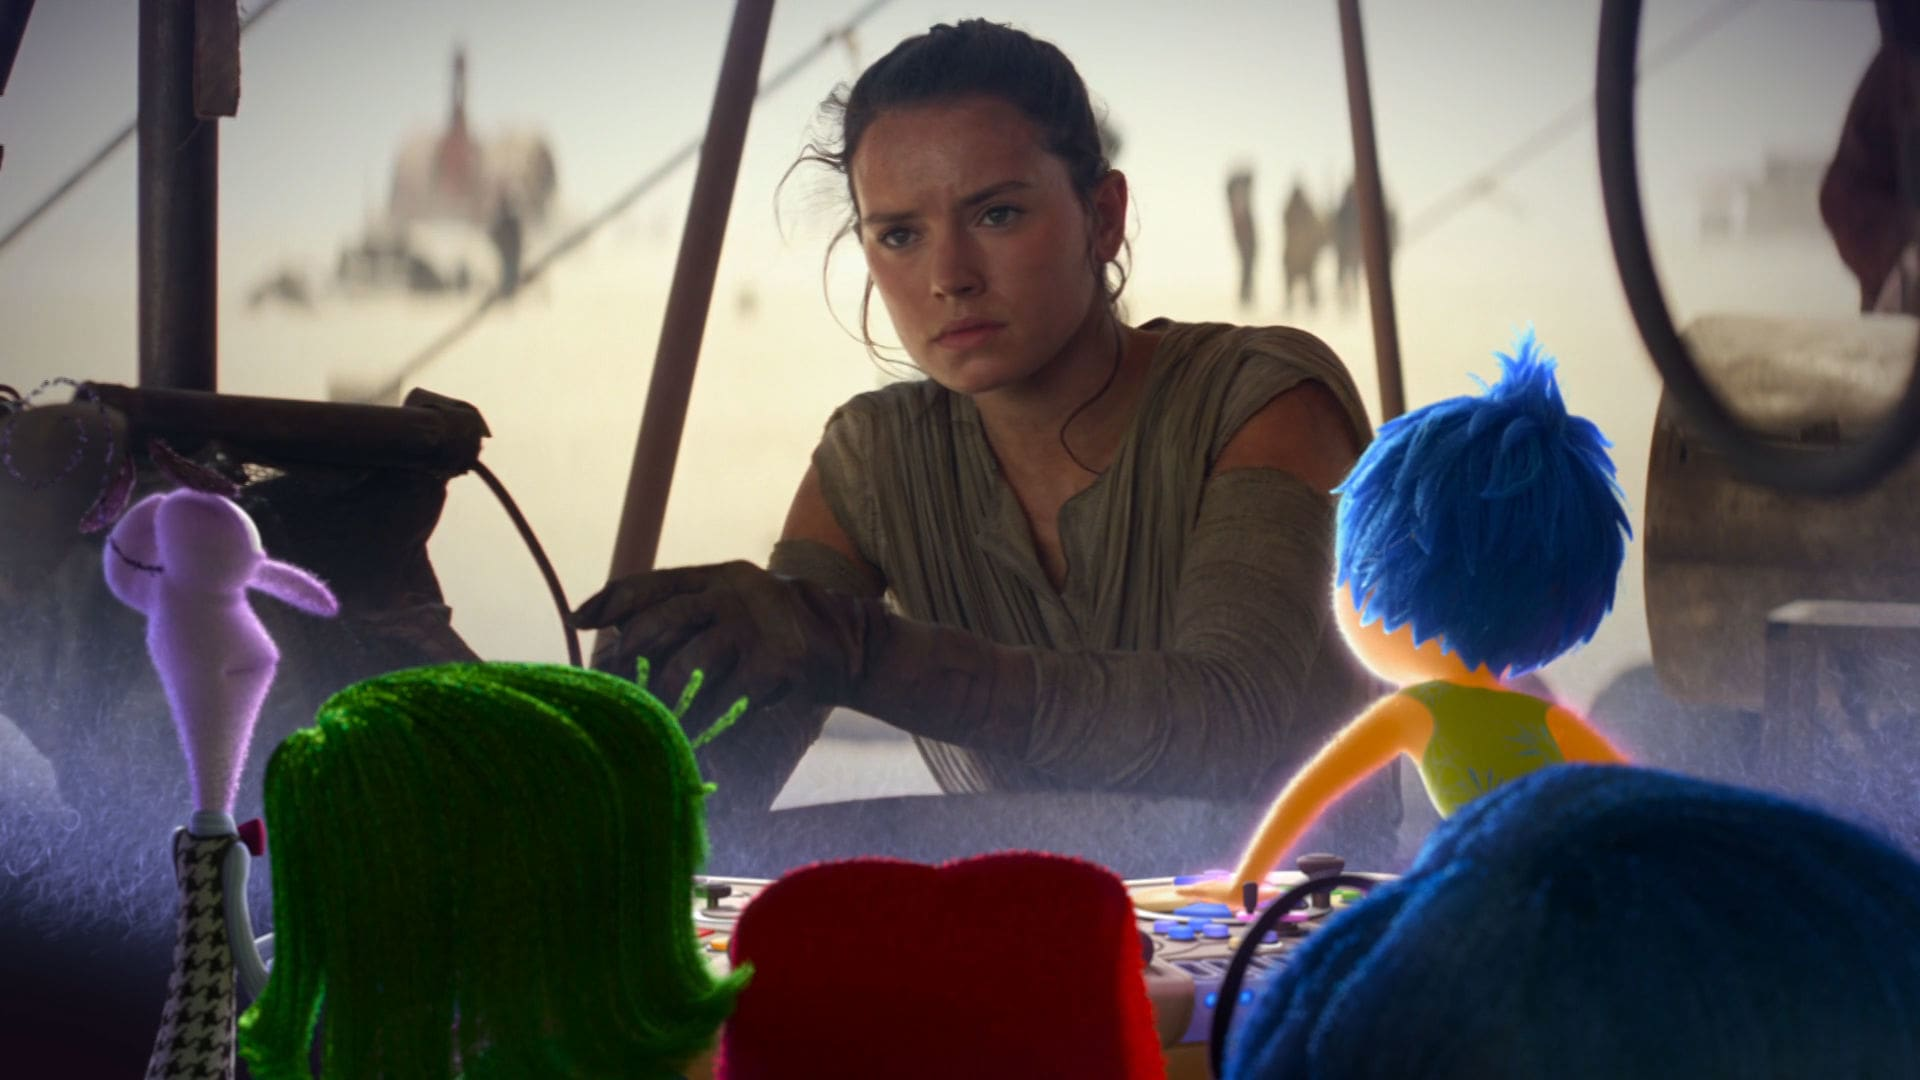 Inside Out Emotions React To Star Wars: The Force Awakens Trailer